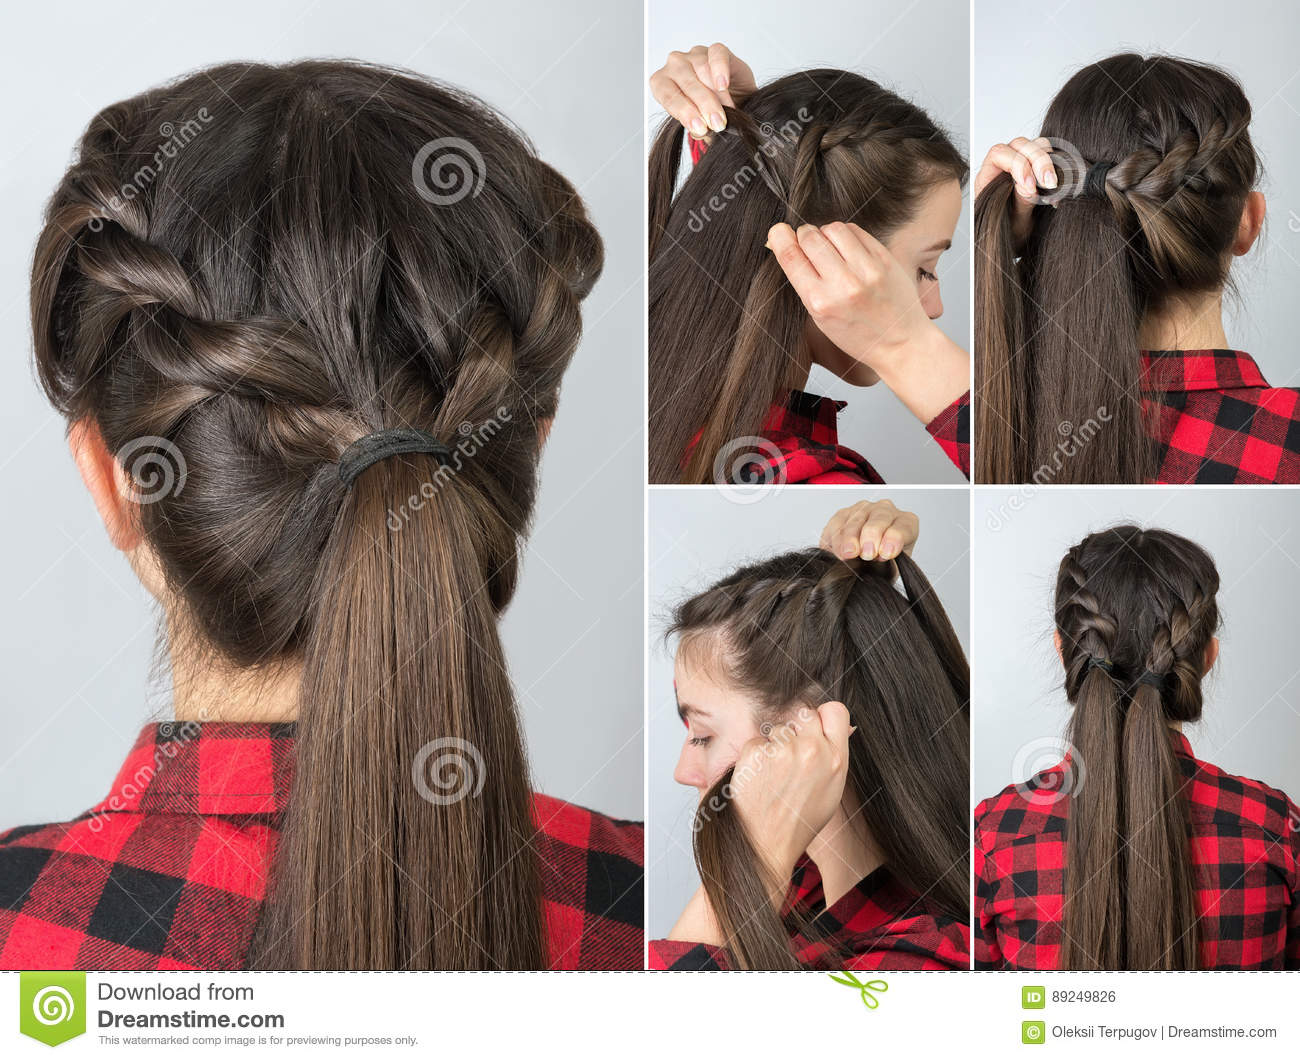 Pony Tail Hairstyle Tutorial Stock Photo Image Of Hair Made 89249826